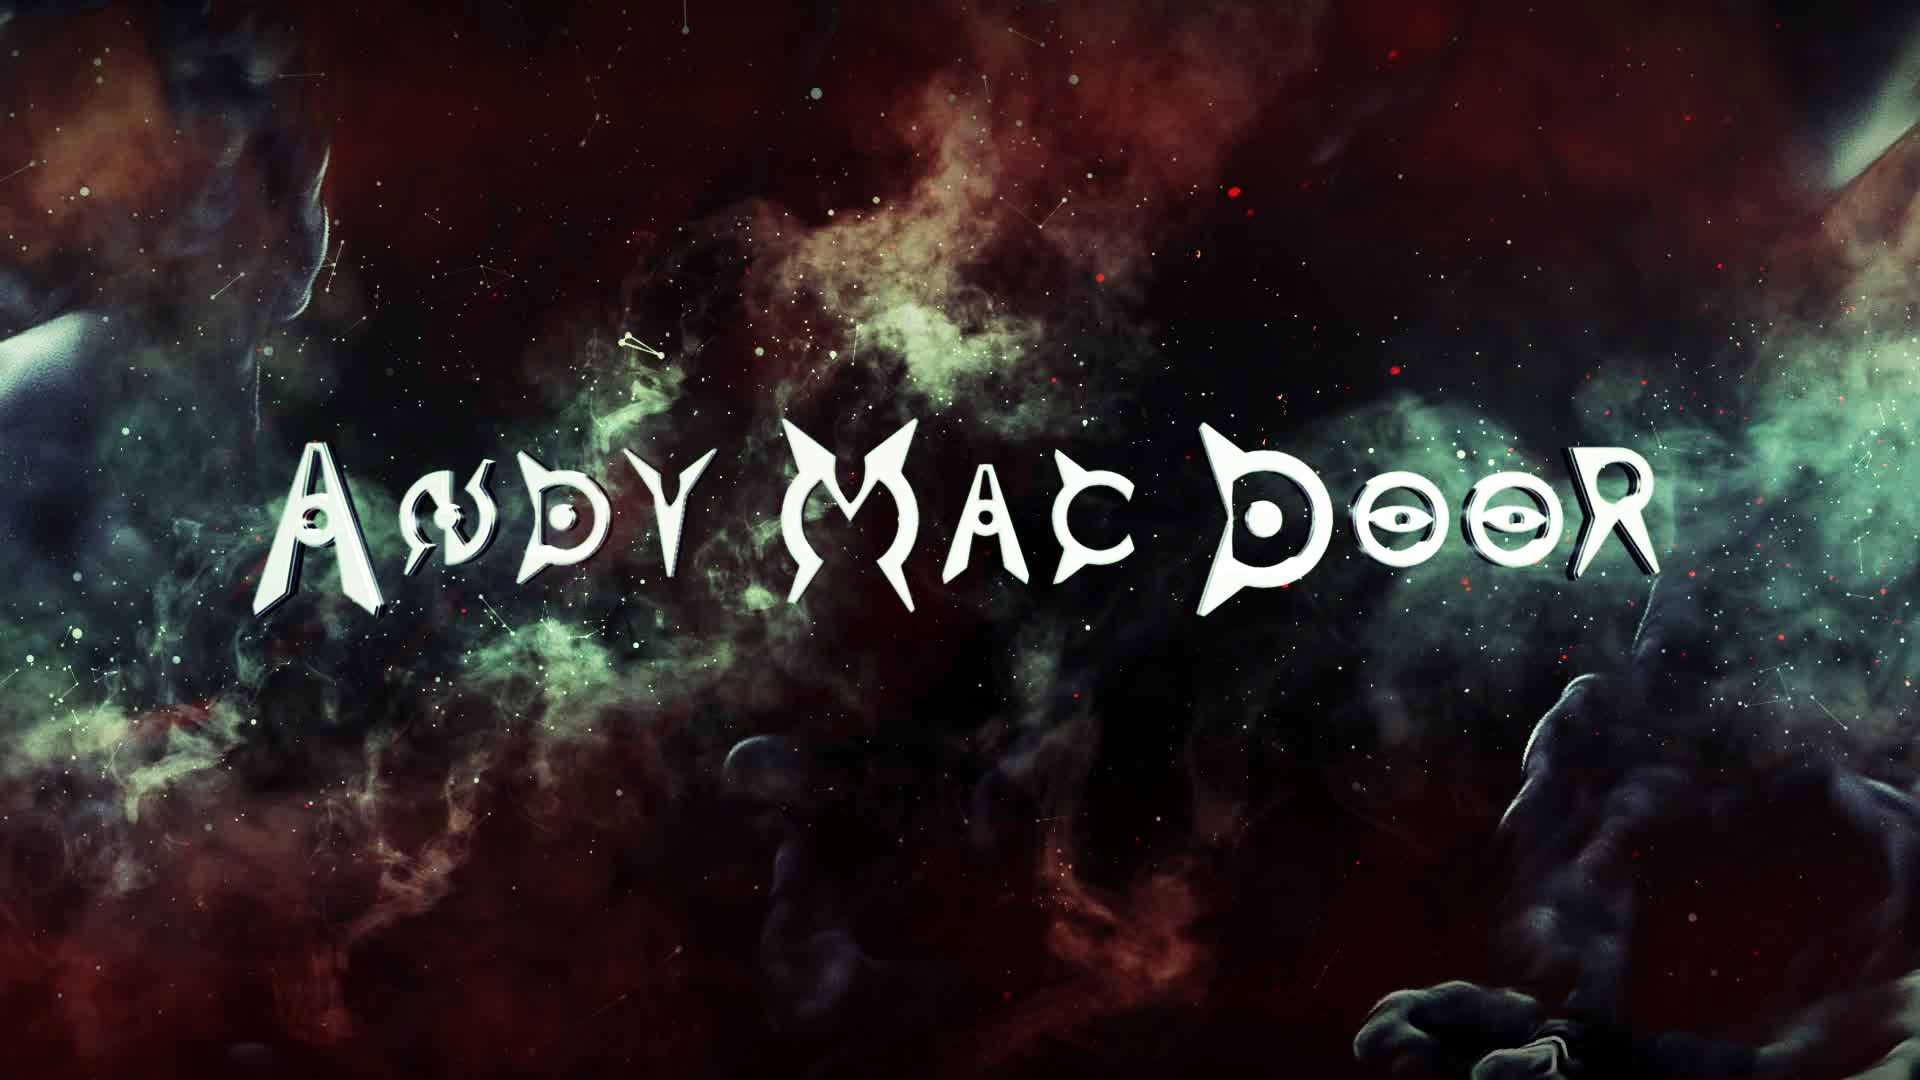 logo andy mac door background wallpaper 1920 1080